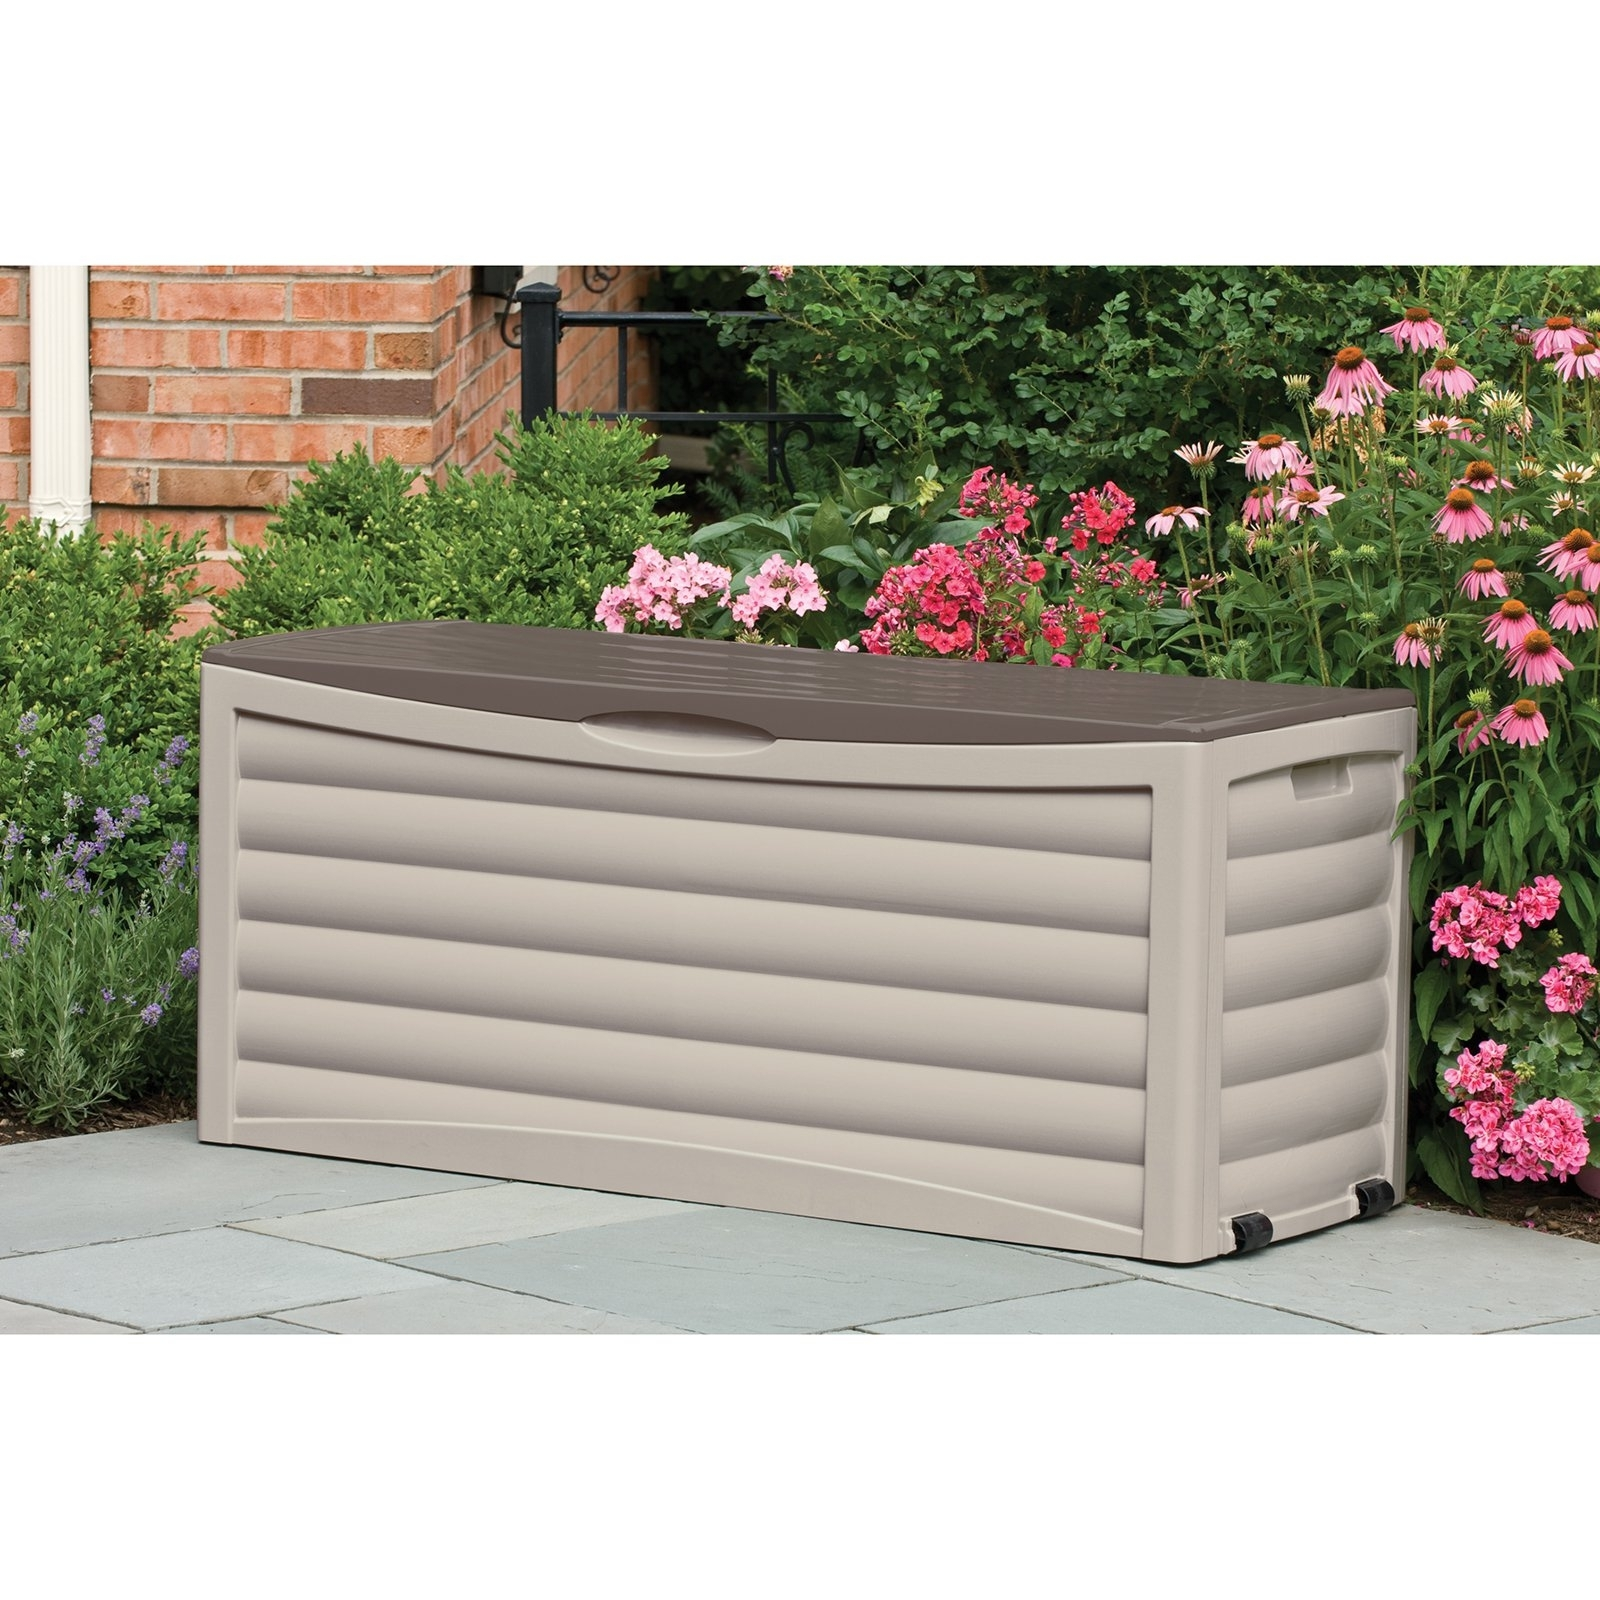 Image of: Keter Brightwood Resin 120 Gallon Outdoor Storage Deck Box Deck Within Waterproof Outdoor Cushion Storage Bo Waterproof Outdoor Cushion Storage Box Idea